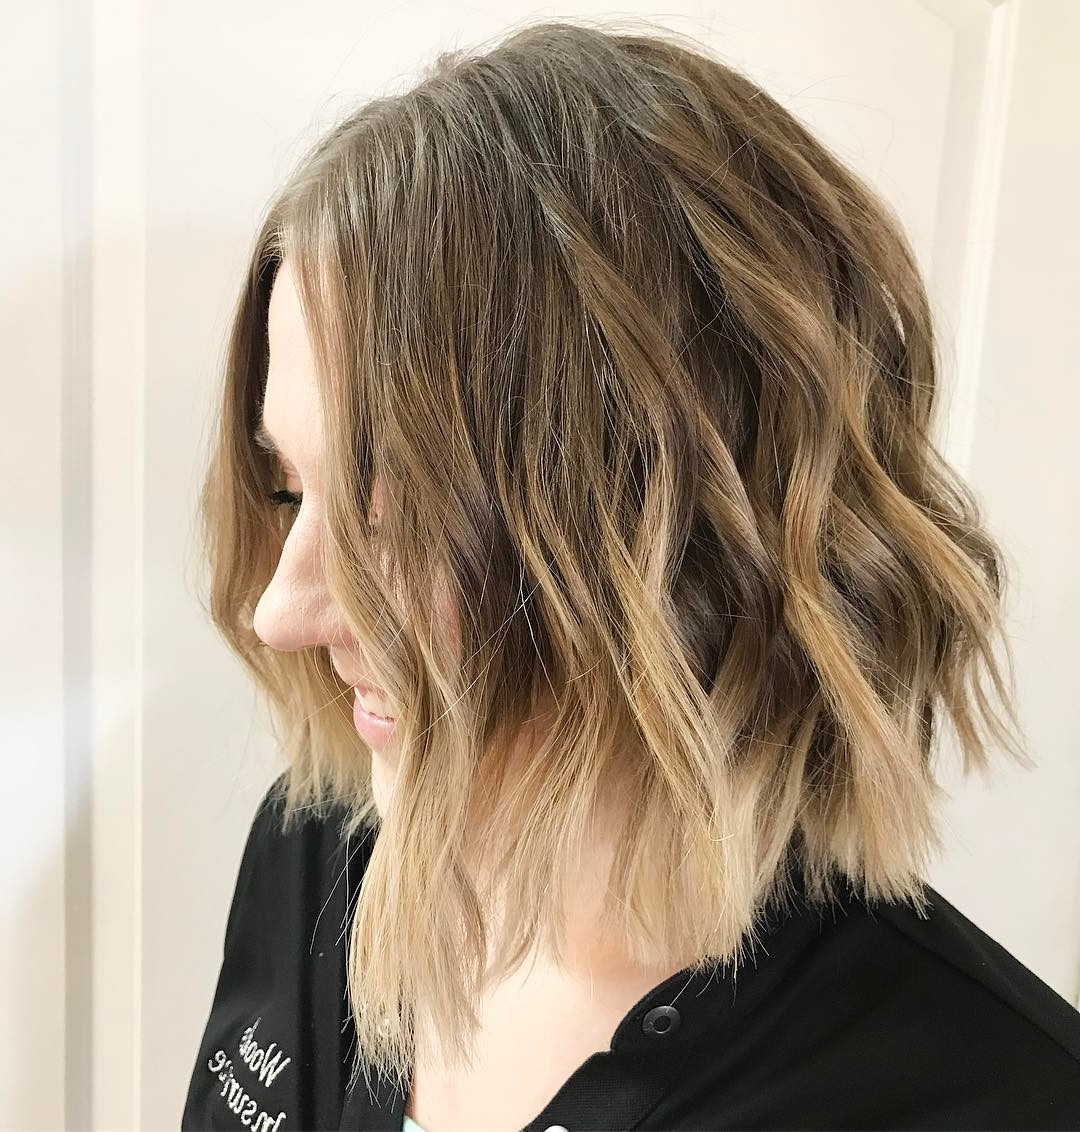 10 Beautiful Medium Bob Haircuts &edgy Looks: Shoulder Length Intended For Choppy Tousled Bob Haircuts For Fine Hair (View 2 of 20)